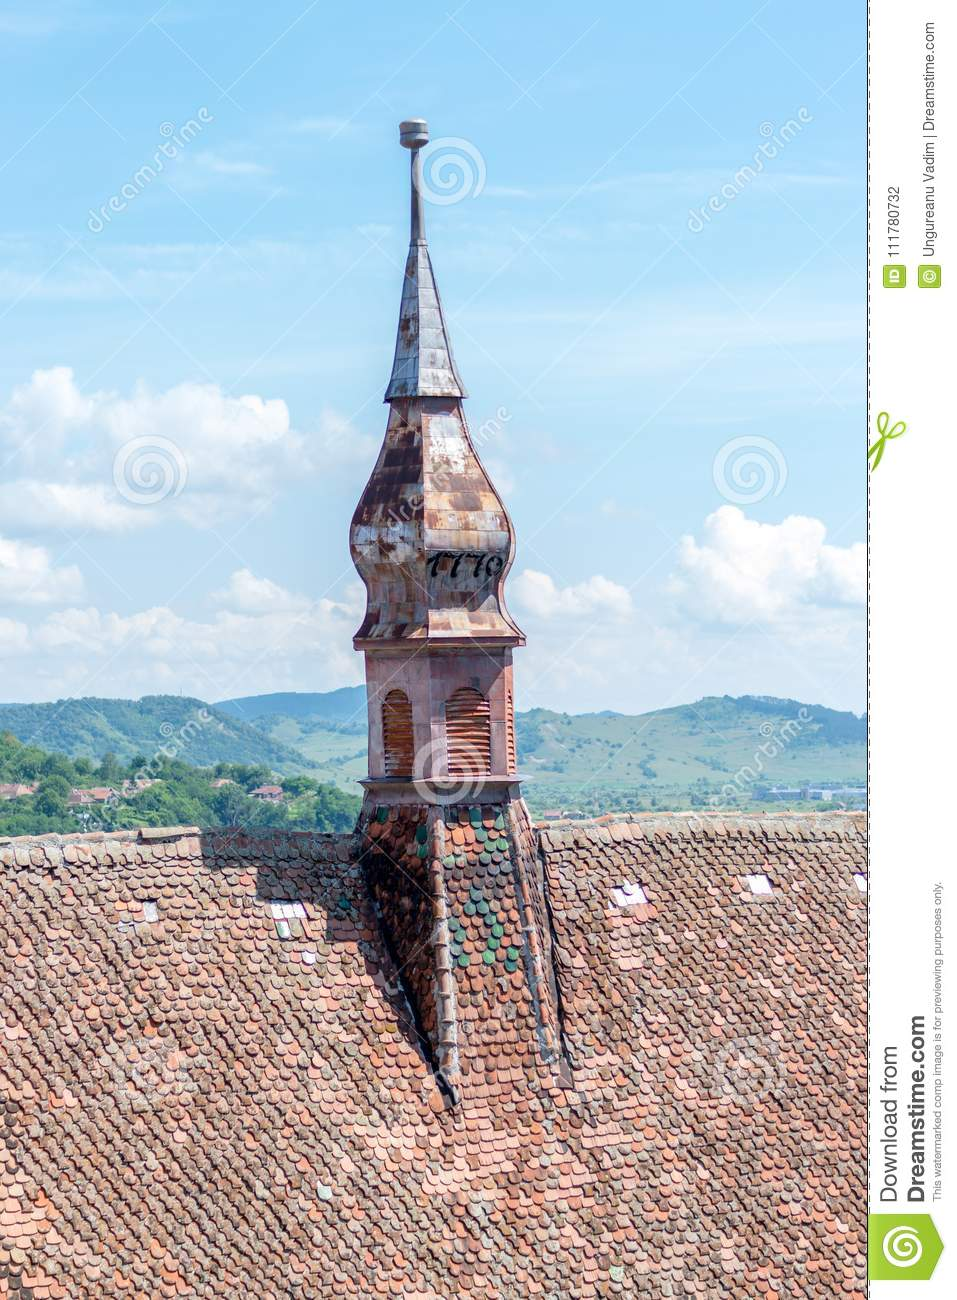 Sighisoara Evangelical Church on a sunny day.